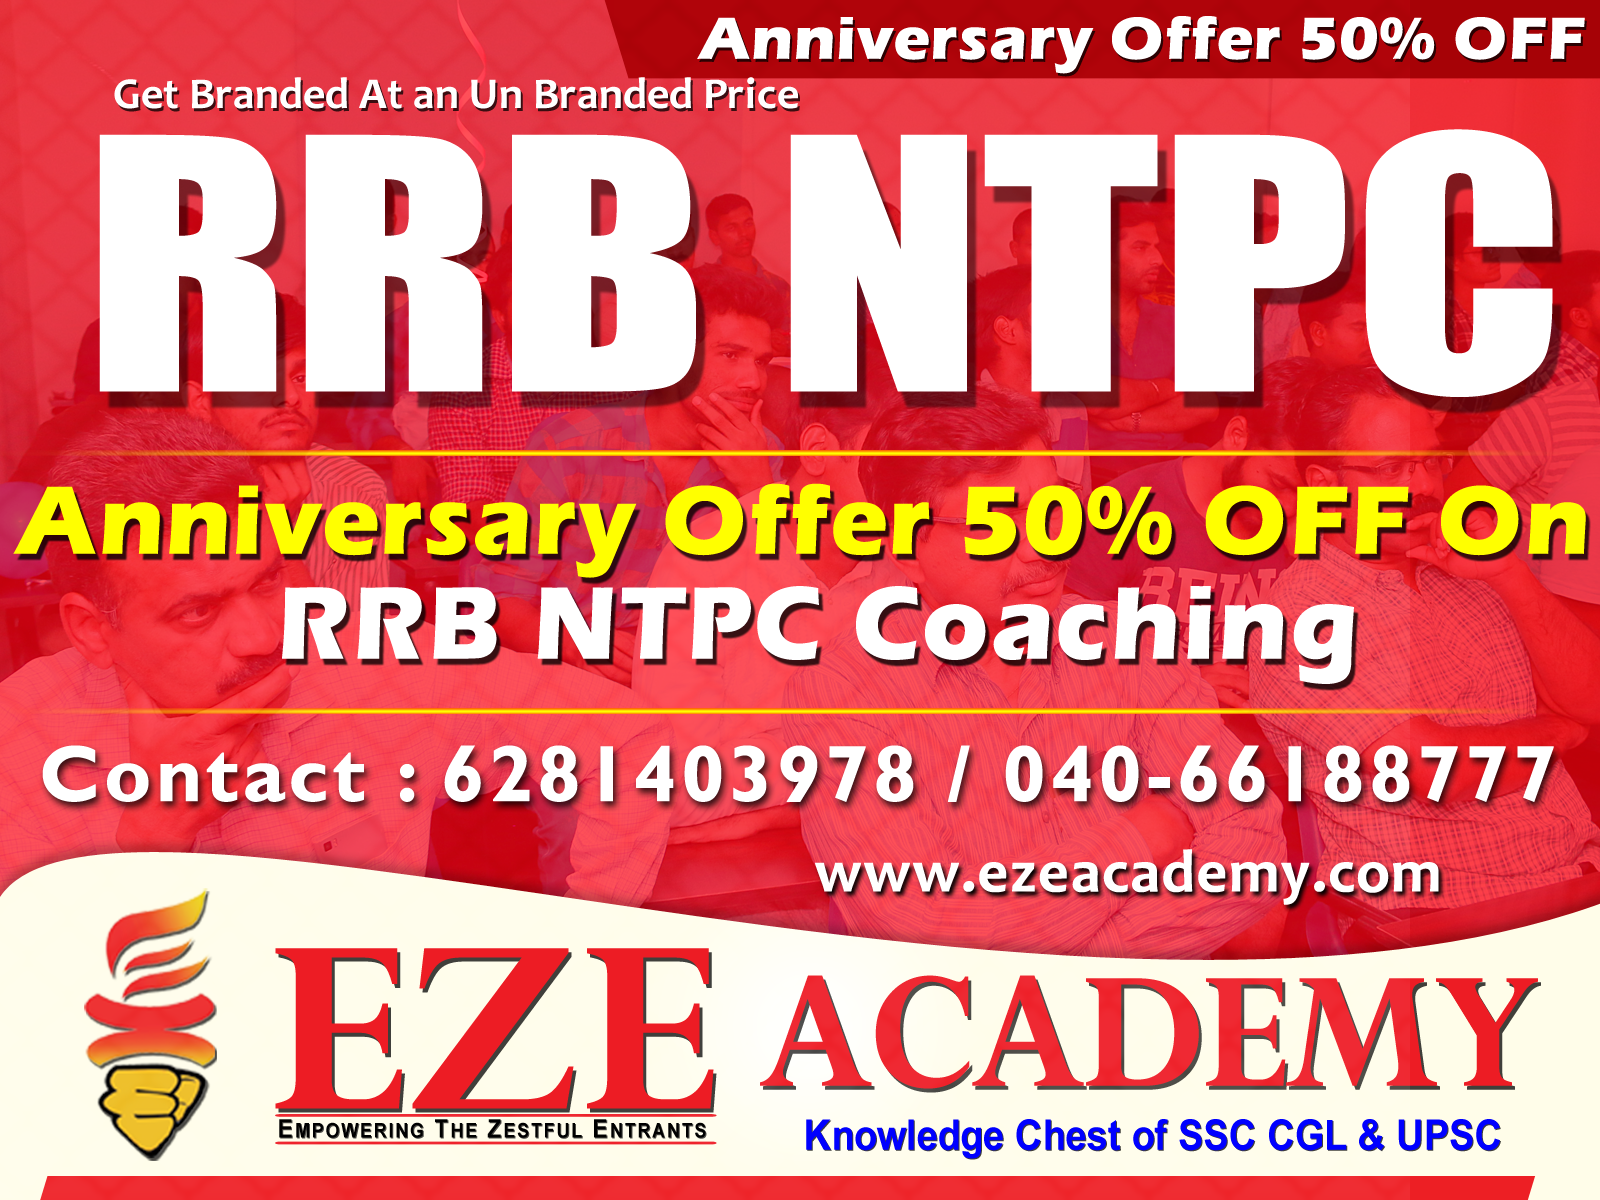 rrb-ntpc-coaching-centers-in-hyderabad,secunderabad-ashoknagar